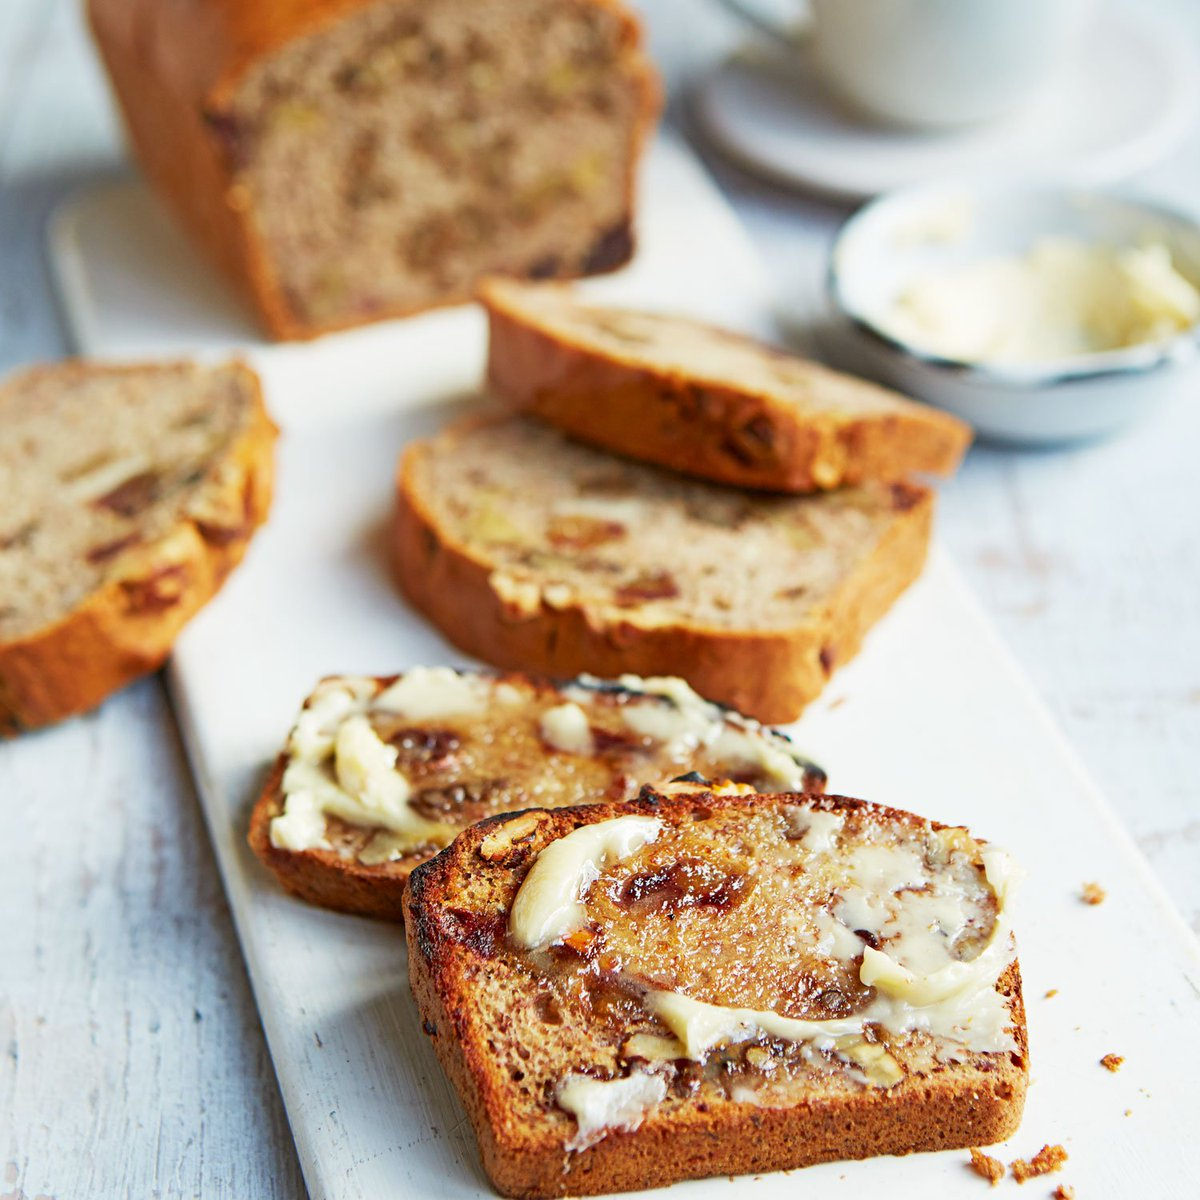 Bbc good food on twitter attention vegans this banana bread is bbc good food on twitter attention vegans this banana bread is too good to resist httpstve5s29f4ac forumfinder Choice Image